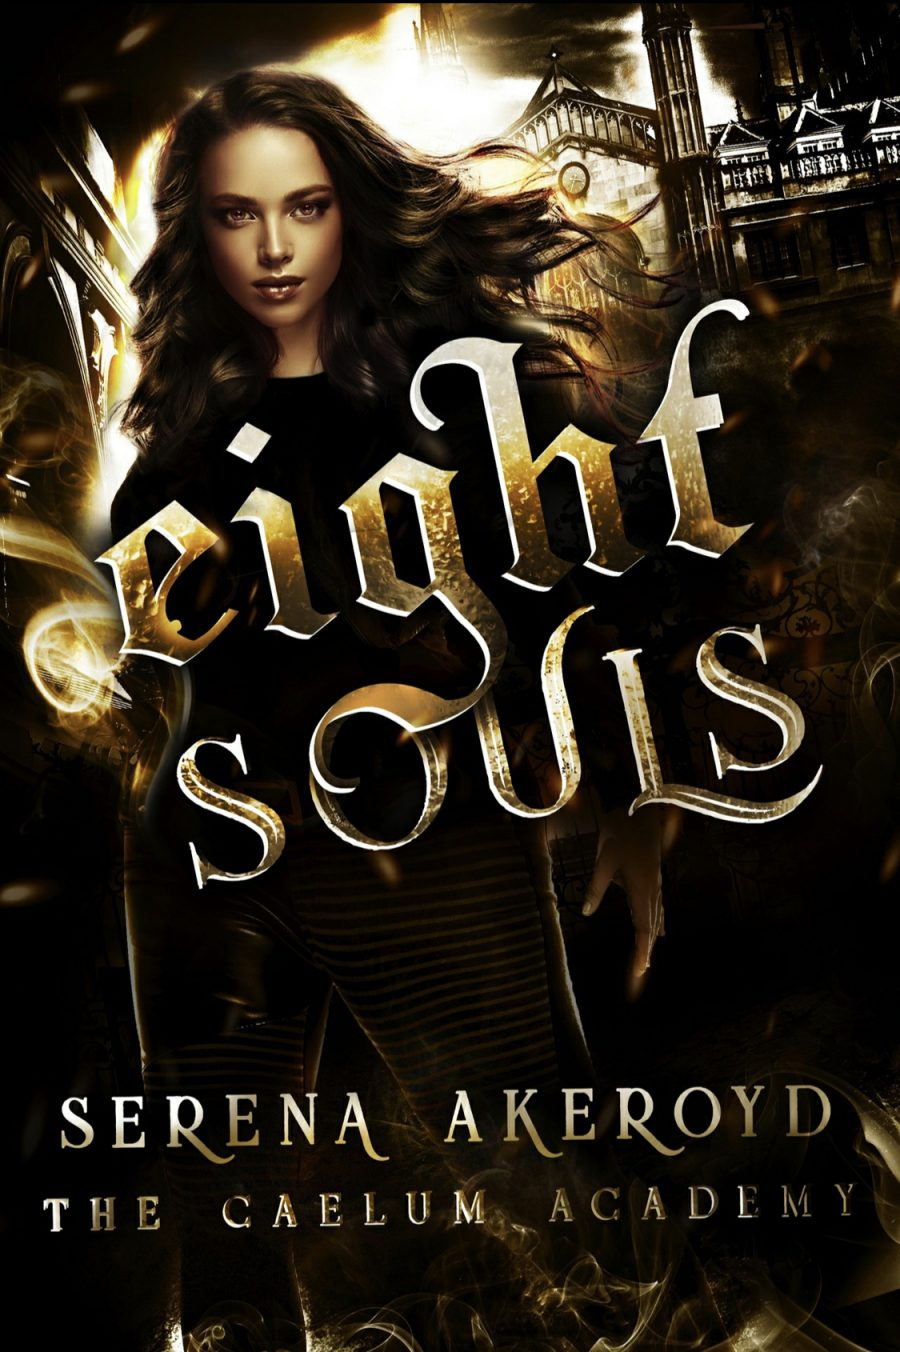 Eight Souls by Serena Akeroyd - A Book Review #BookReview #SlowBurn #RH #WhyChoose #Academy #PNR #Paranormal #ReverseHarem #Bully #NA #KindleUnlimited #KU #5Star